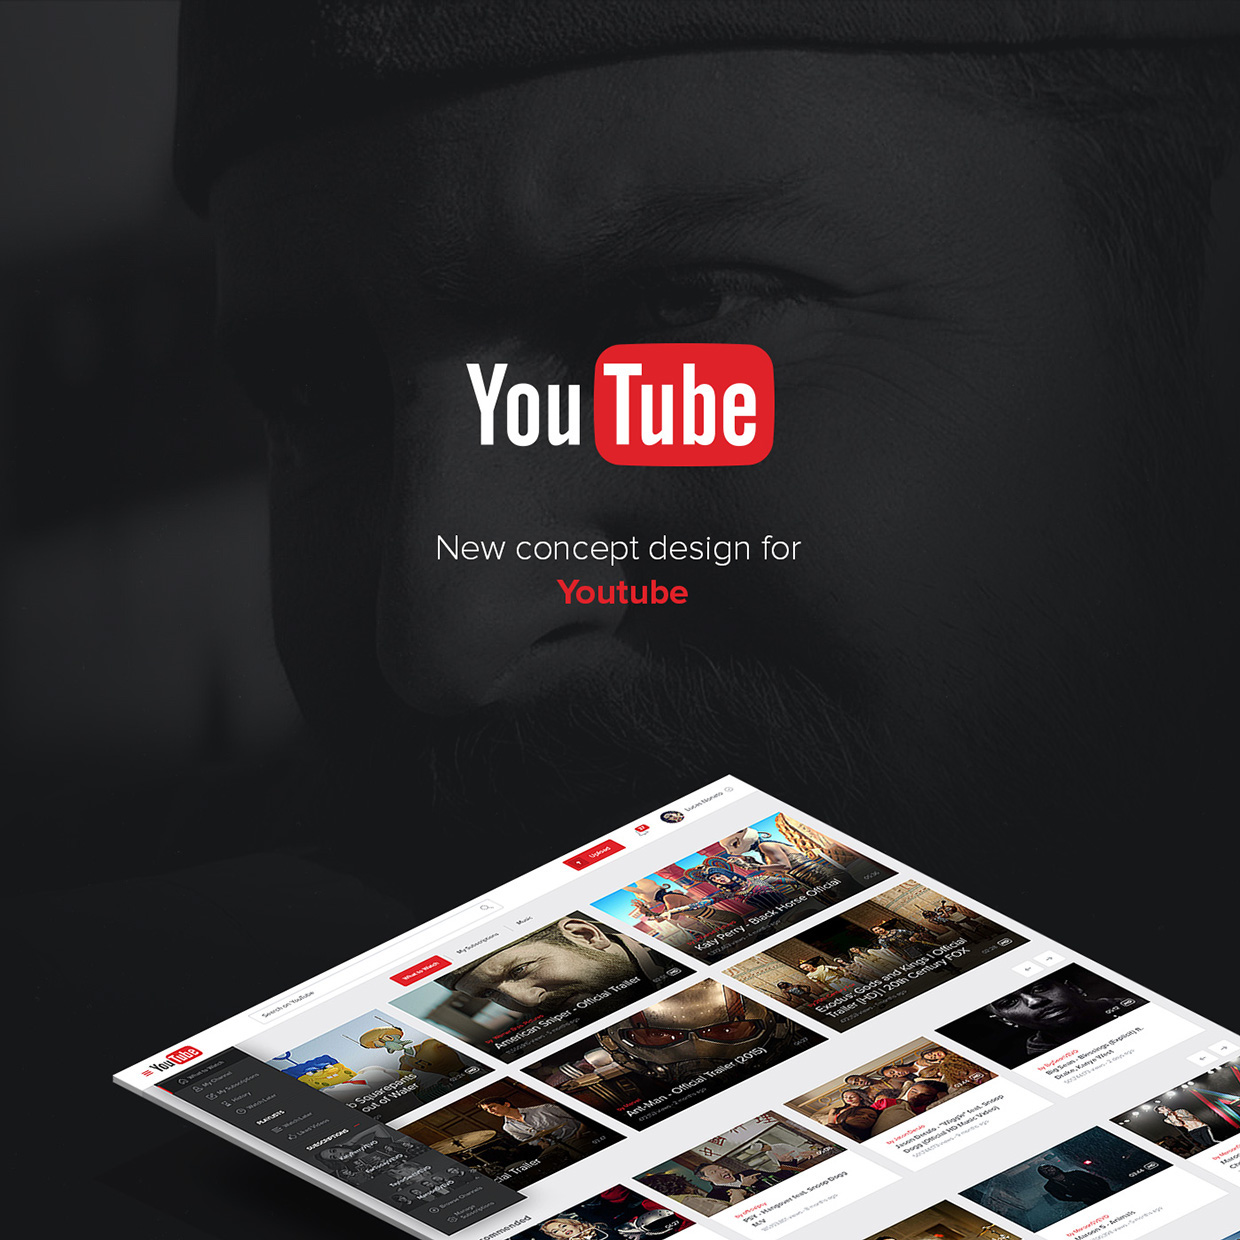 New UX Design Concept of YouTube 2015 By Lucas Nonato (1)